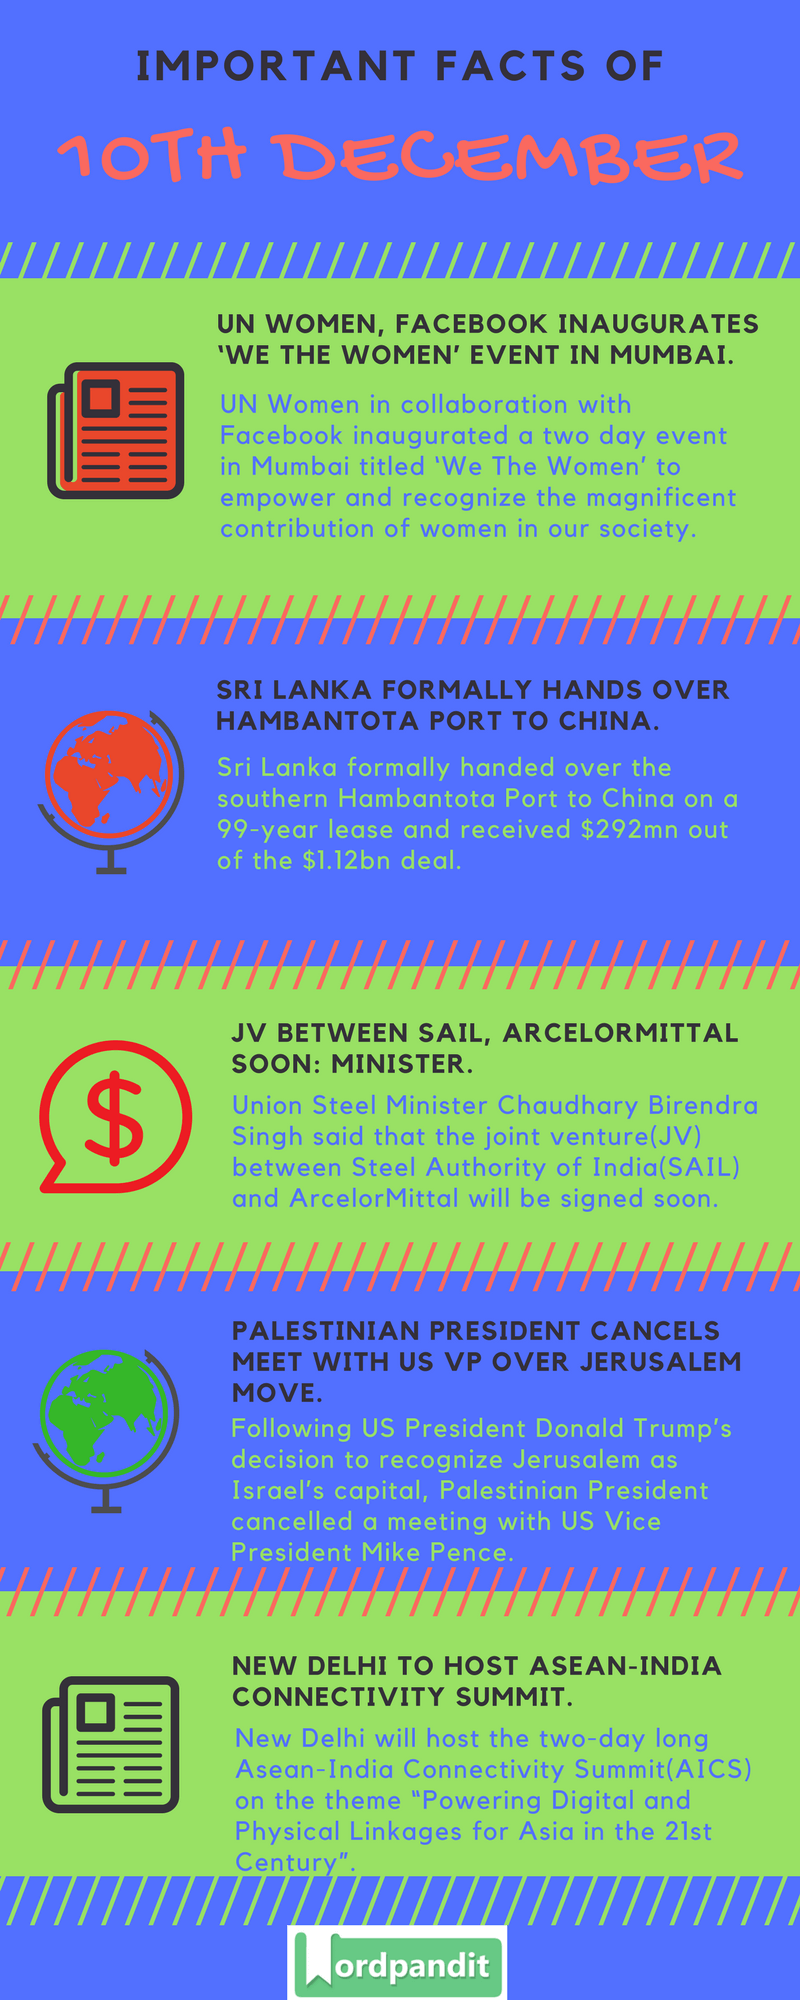 Daily-Current-Affairs-10-december-2017-Current-Affairs-Quiz-december-10-2017-Current-Affairs-Infographic